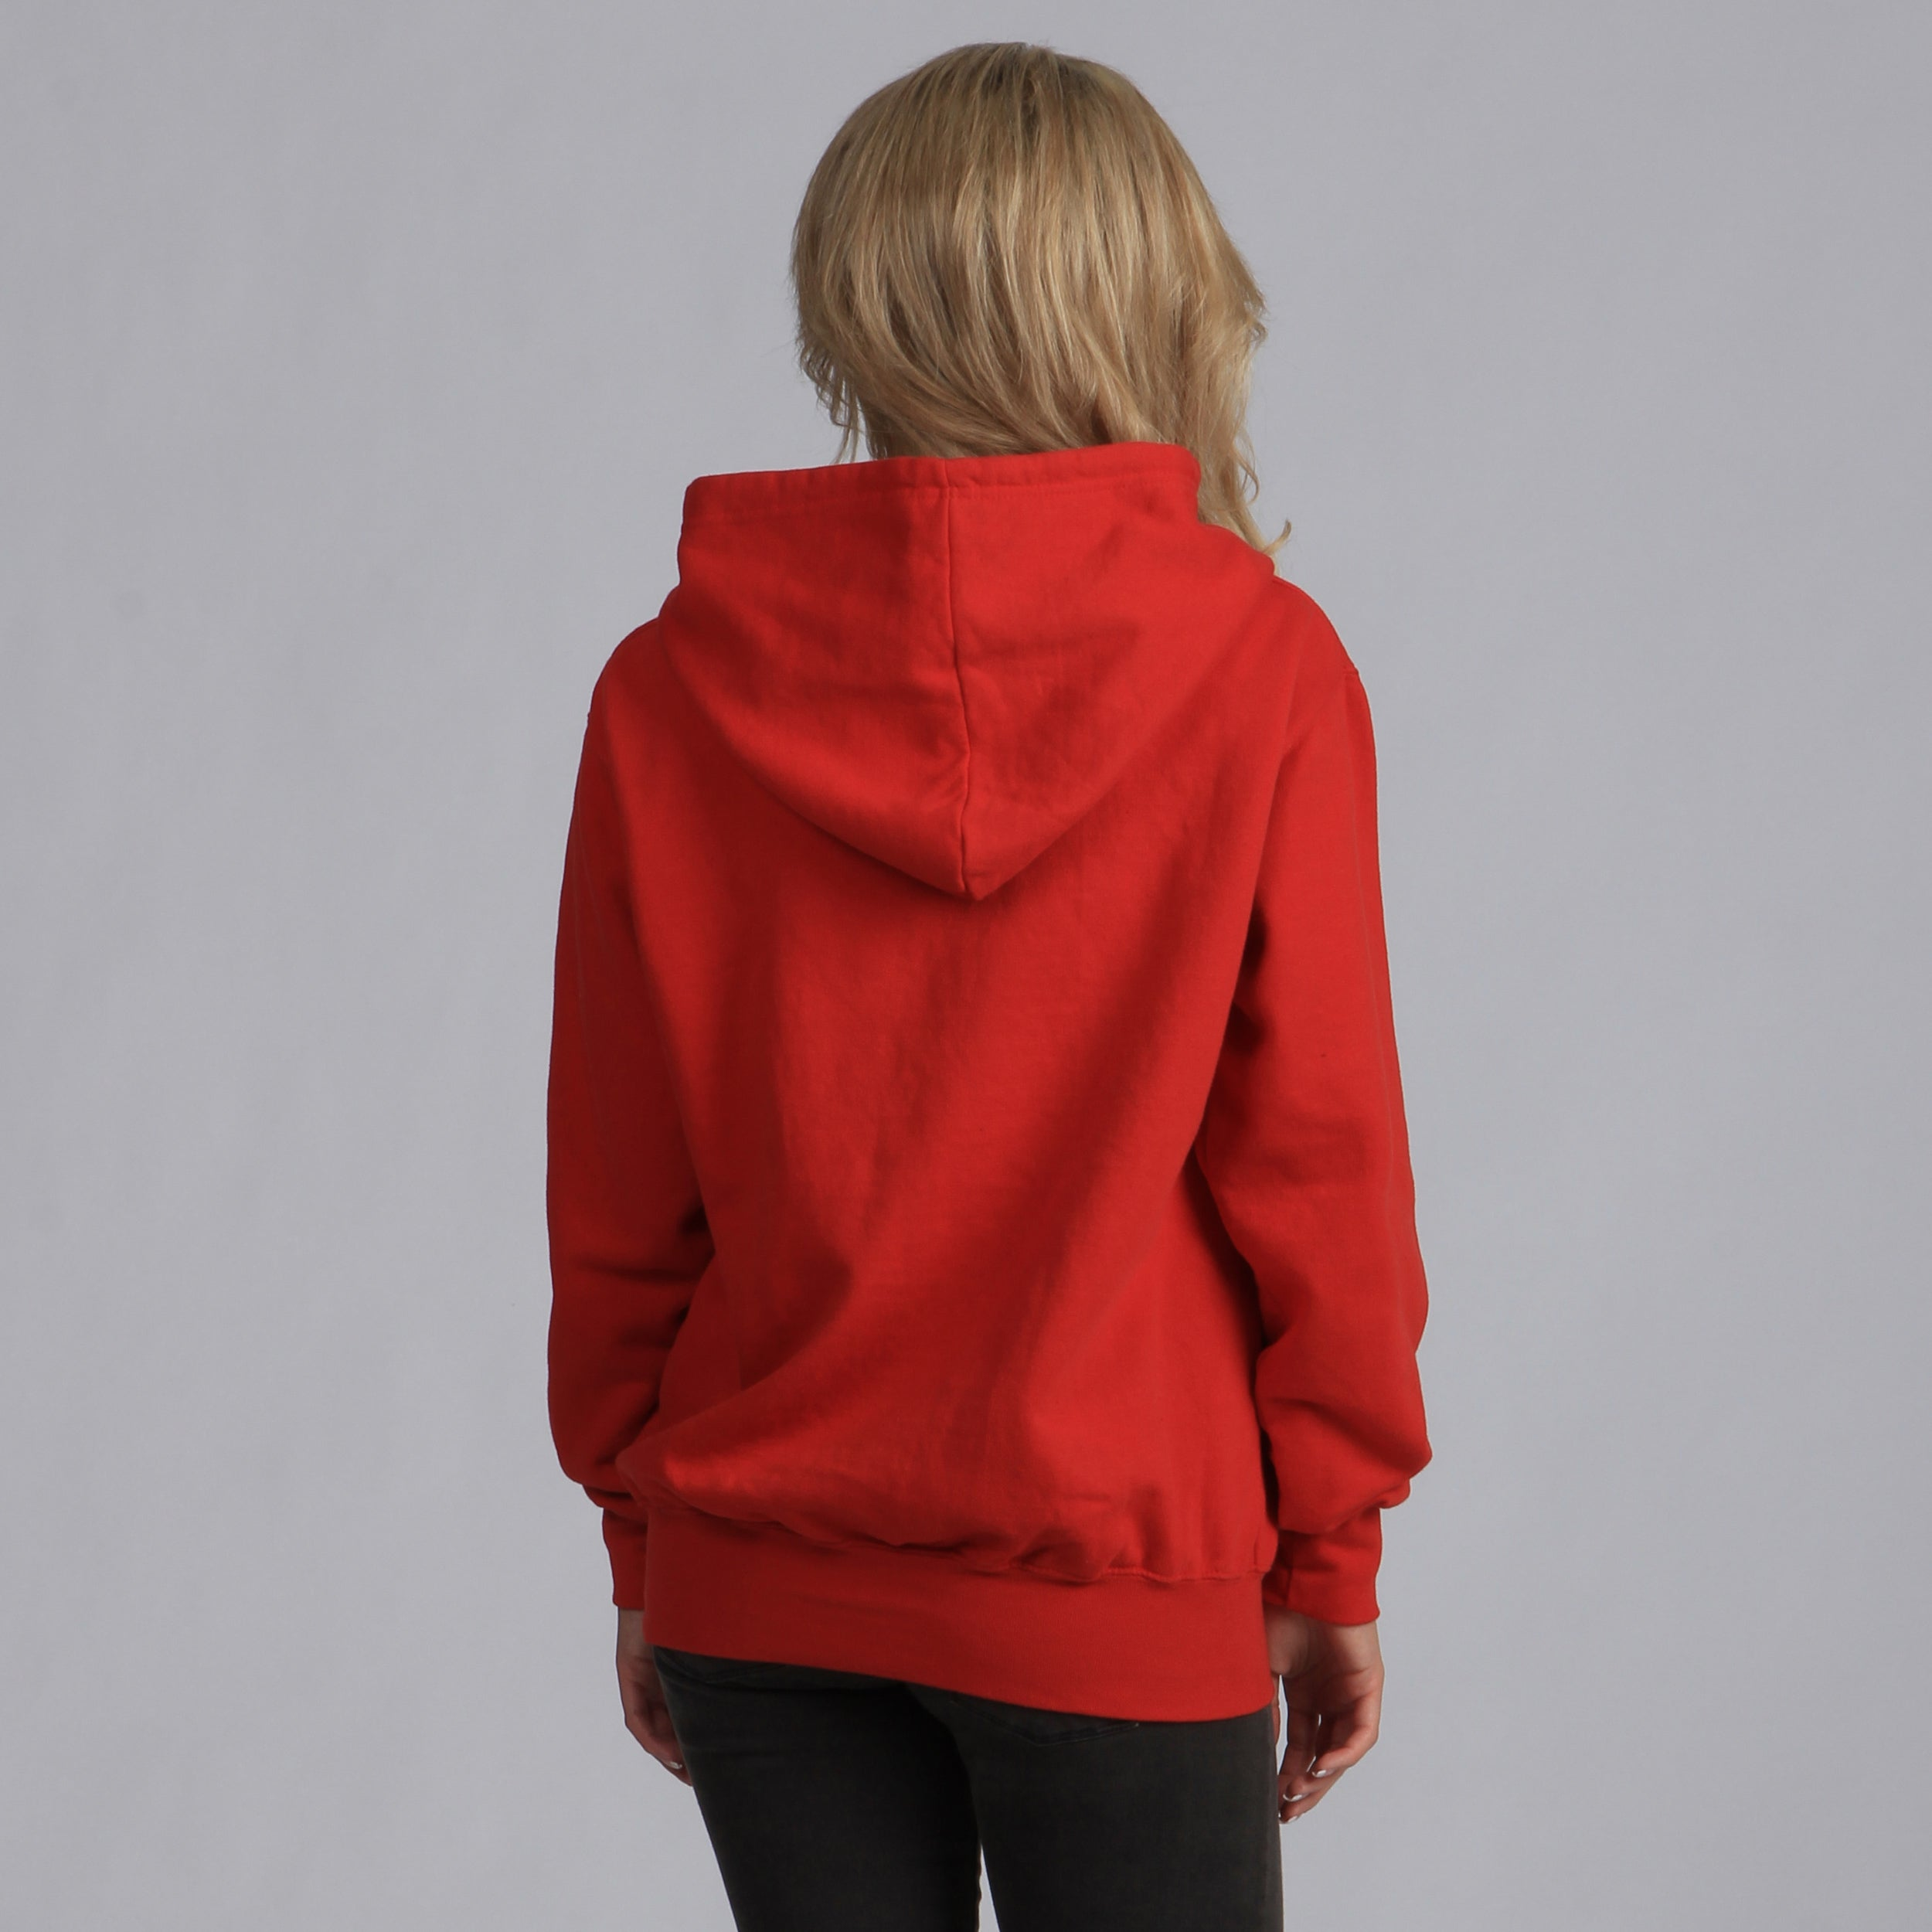 443dd8debdd Shop Lifeguard Unisex Applique Zip-up Hooded Sweatshirt - Free Shipping  Today - Overstock - 7751078